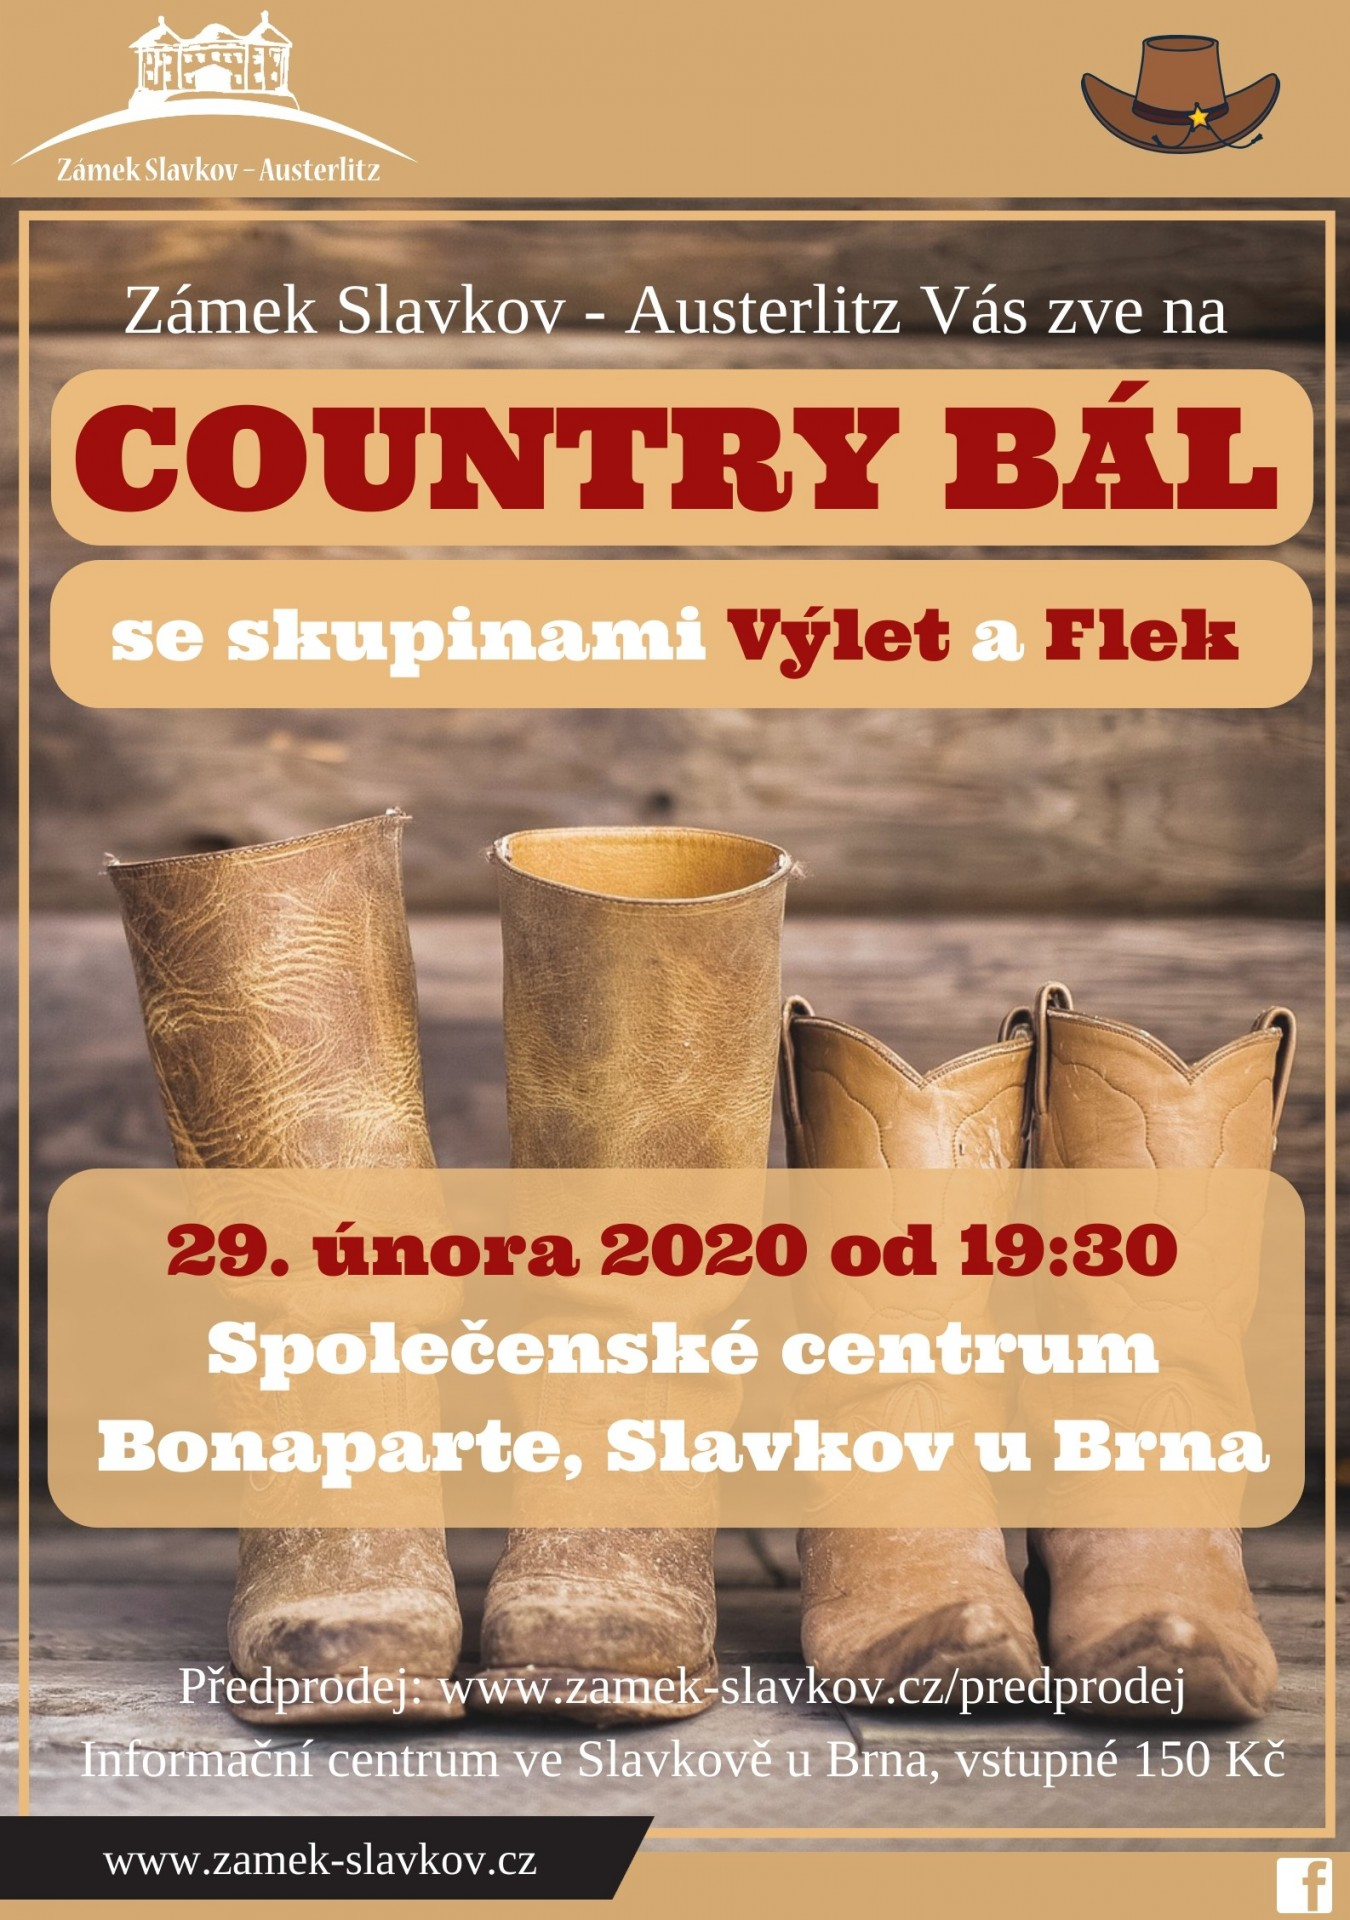 Country bál